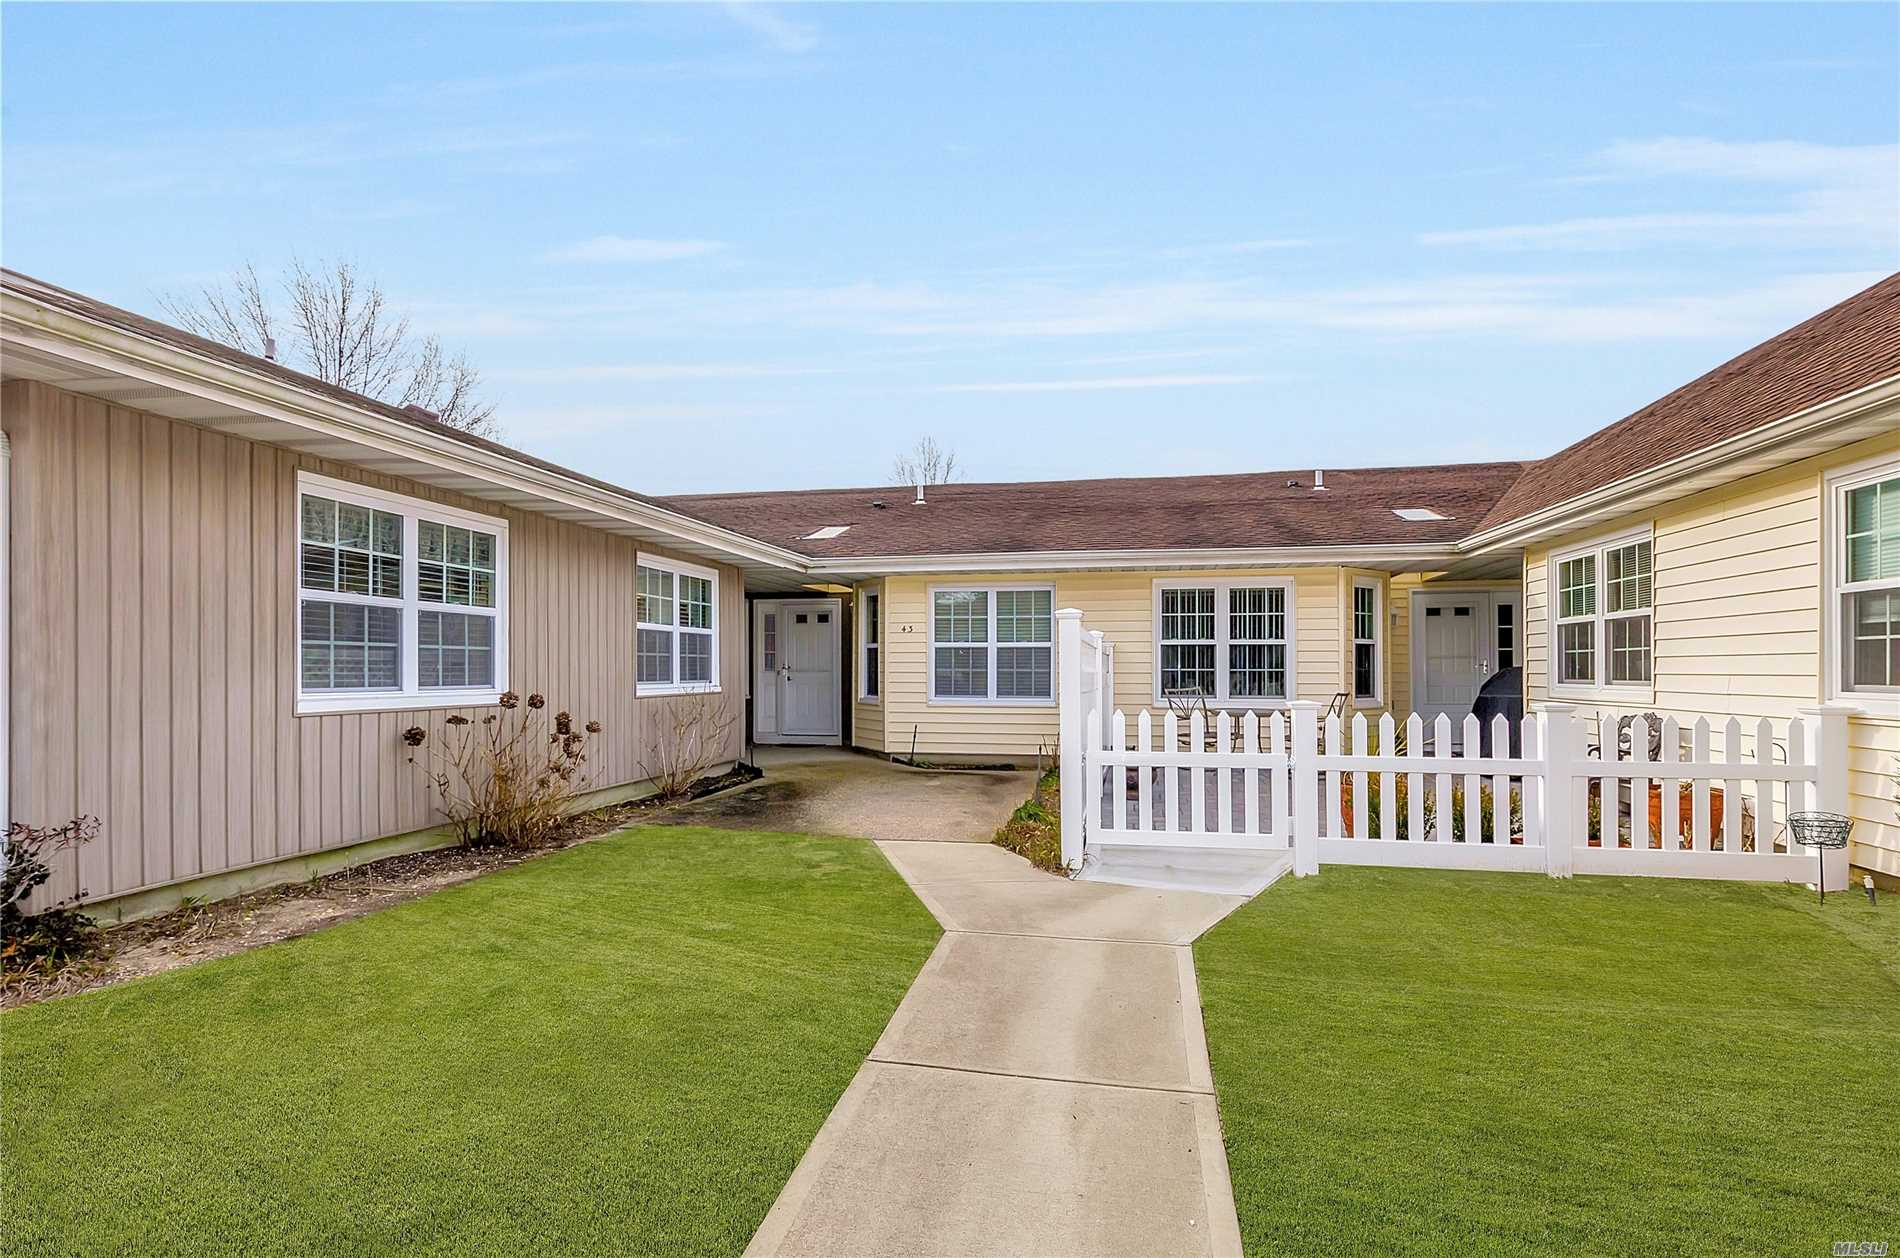 Picturesque 55+ Community W/24 Hour Gated Security. Turn Key Move In Condition. Mrs. Clean Lives Here. Amenities Include Lifeguarded Heated Pool. Bocci Ball, Shuffle Board. Community Center W/Library. Residents Enjoy Convenient Jitney Transportation To Town. Belgium Block Edged Roads. Close To Shopping And Highways. Bring Your Fussiest Buyers.